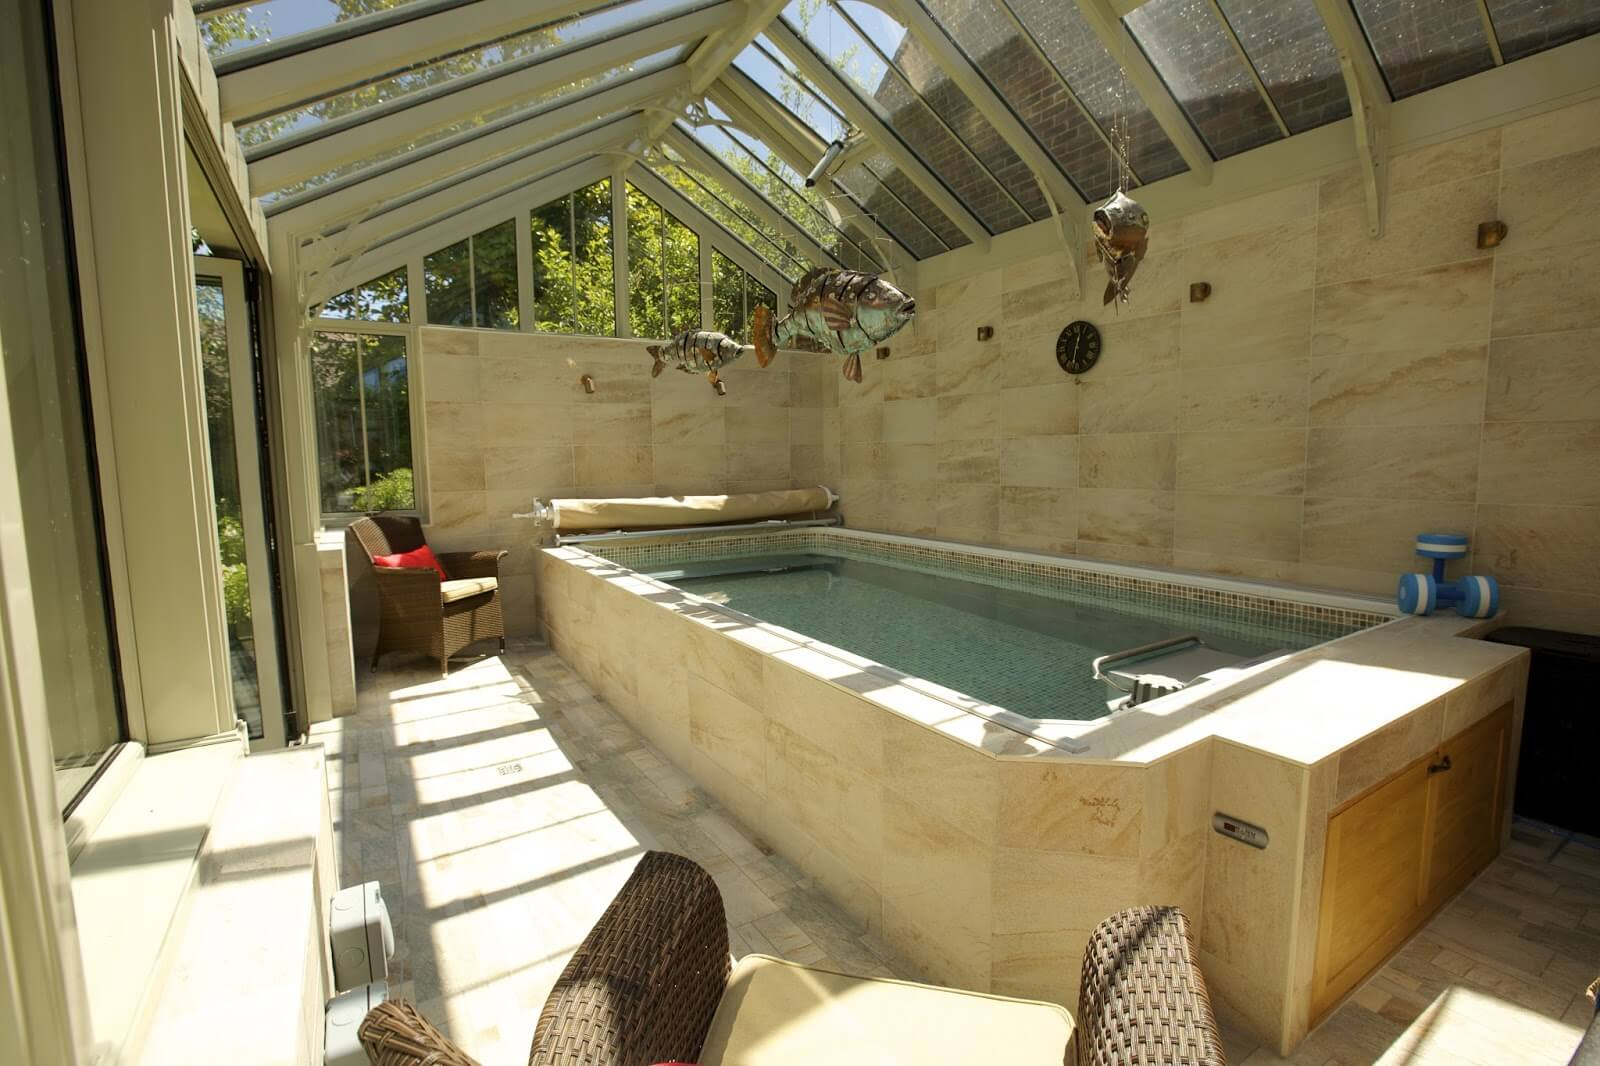 3 tips for success from home counties pools hot tubs - Endless pools swim spa owner s manual ...